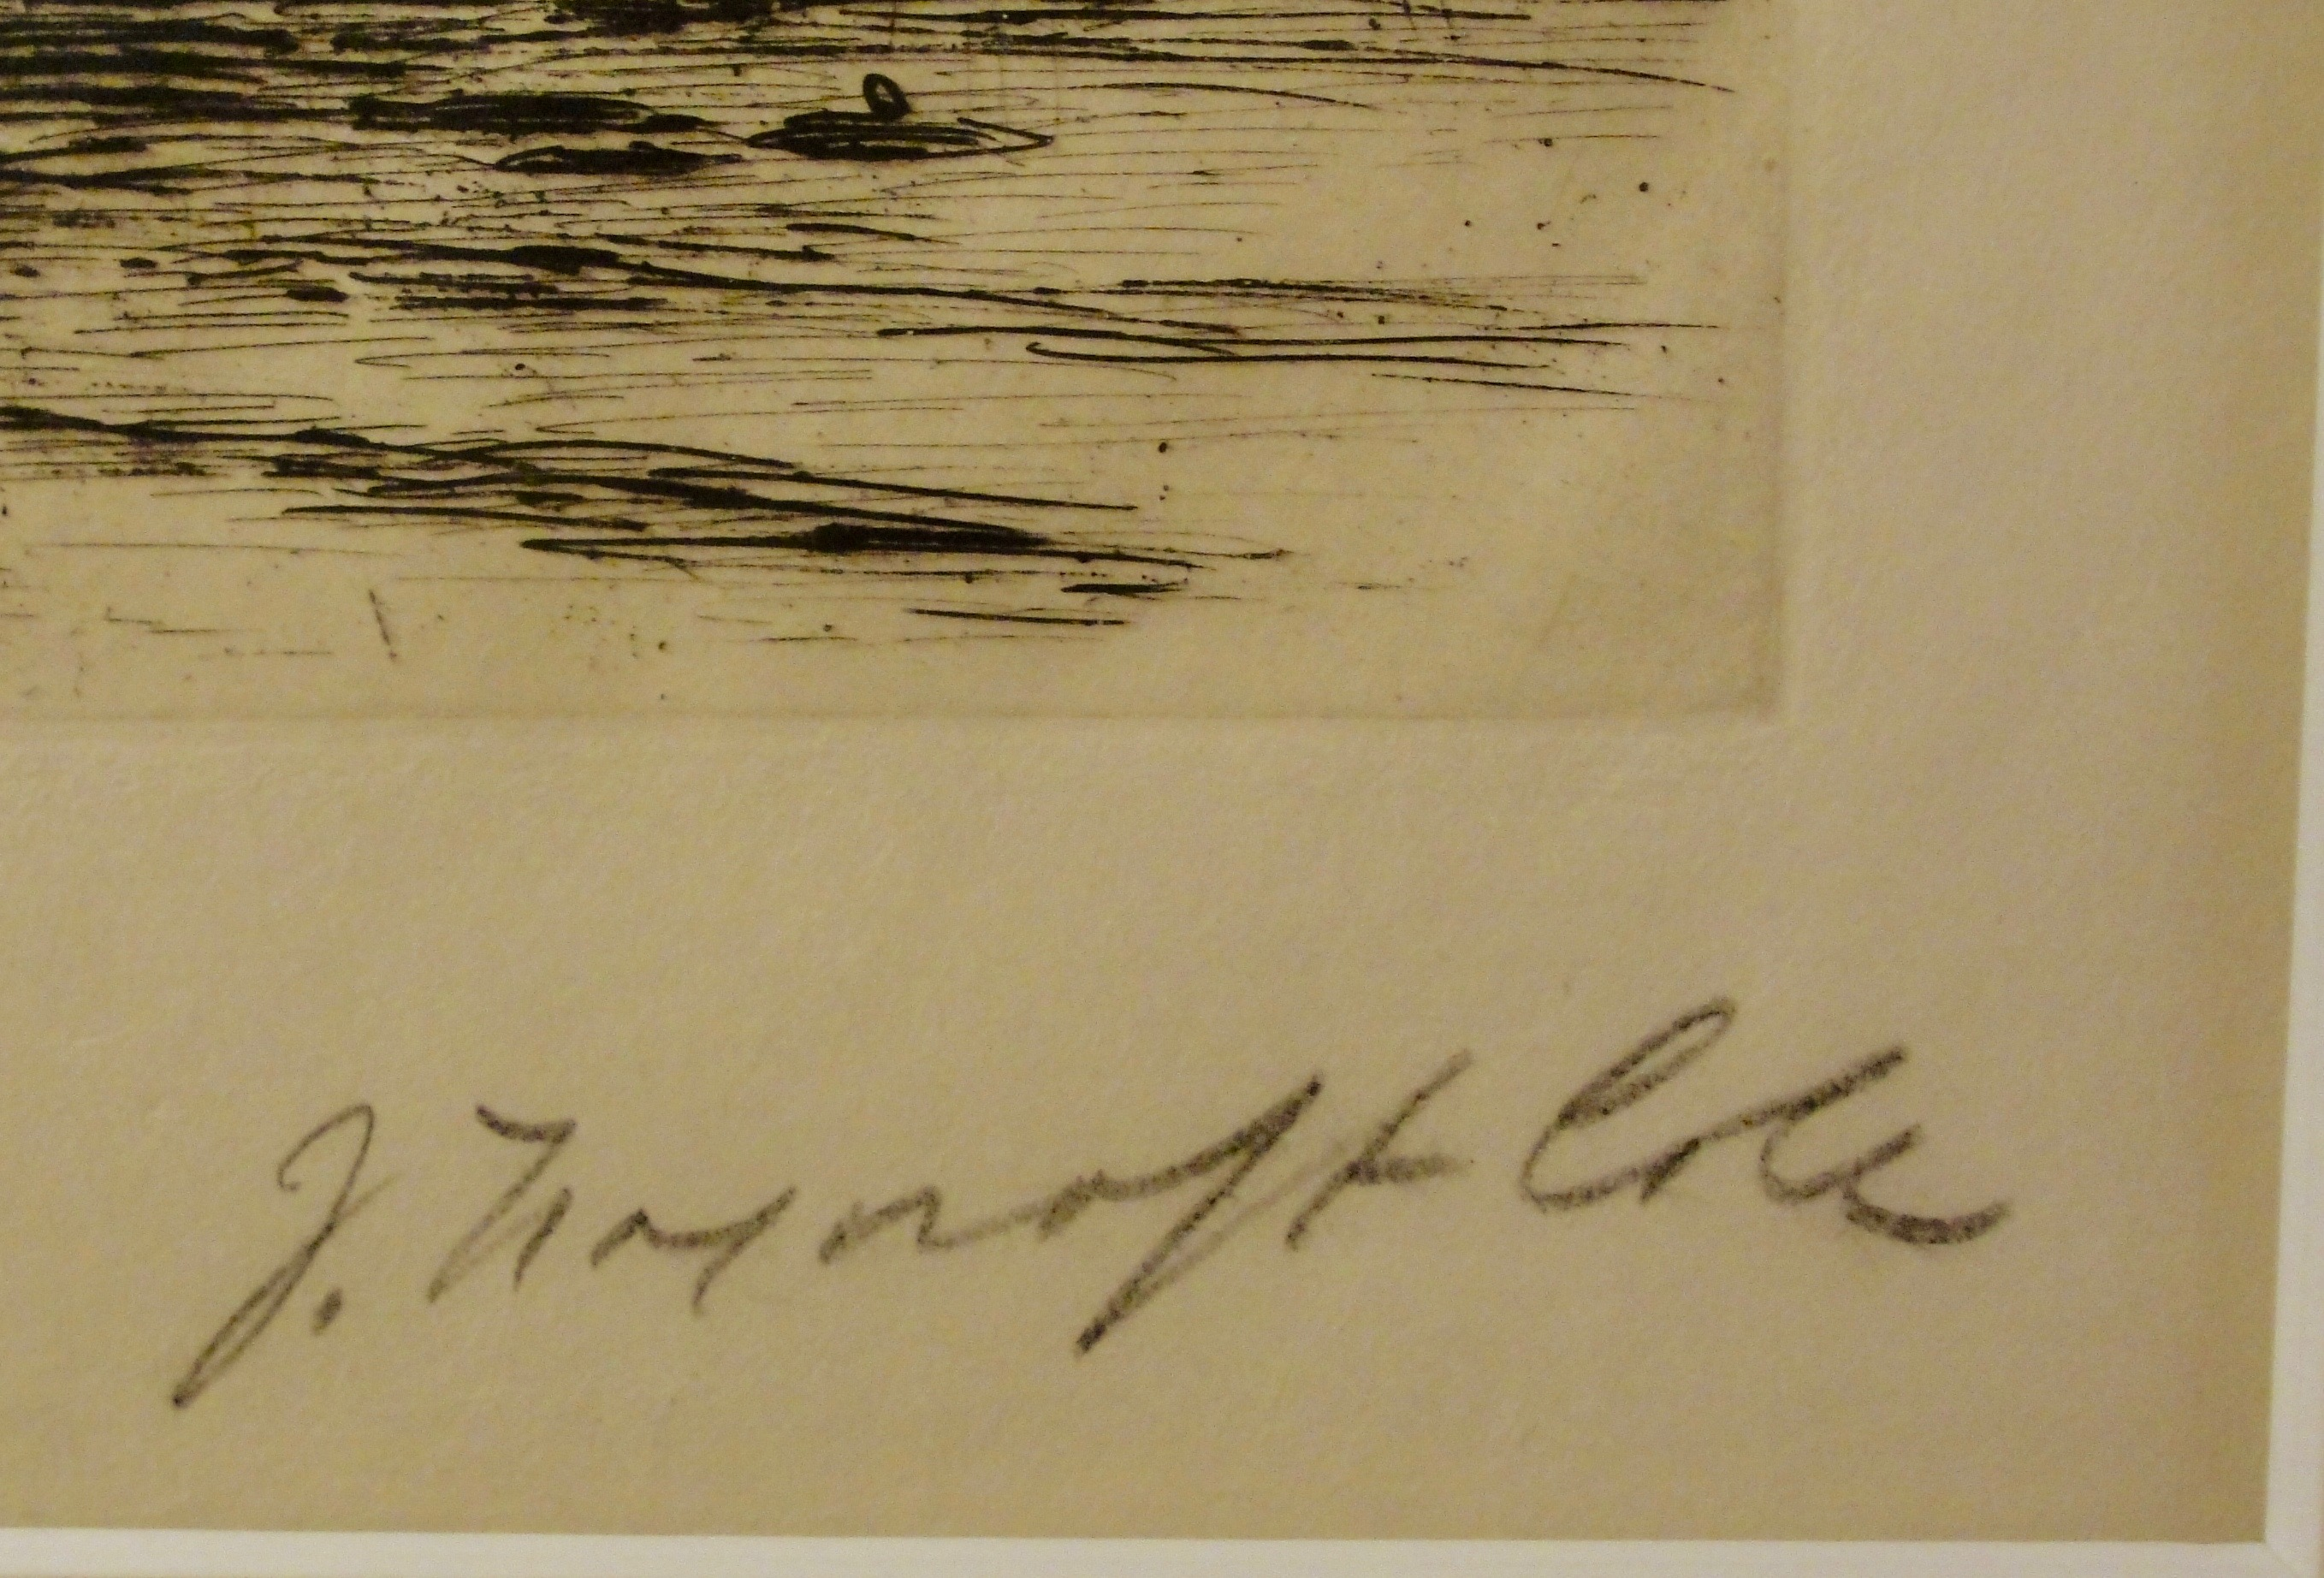 Signature on the printing